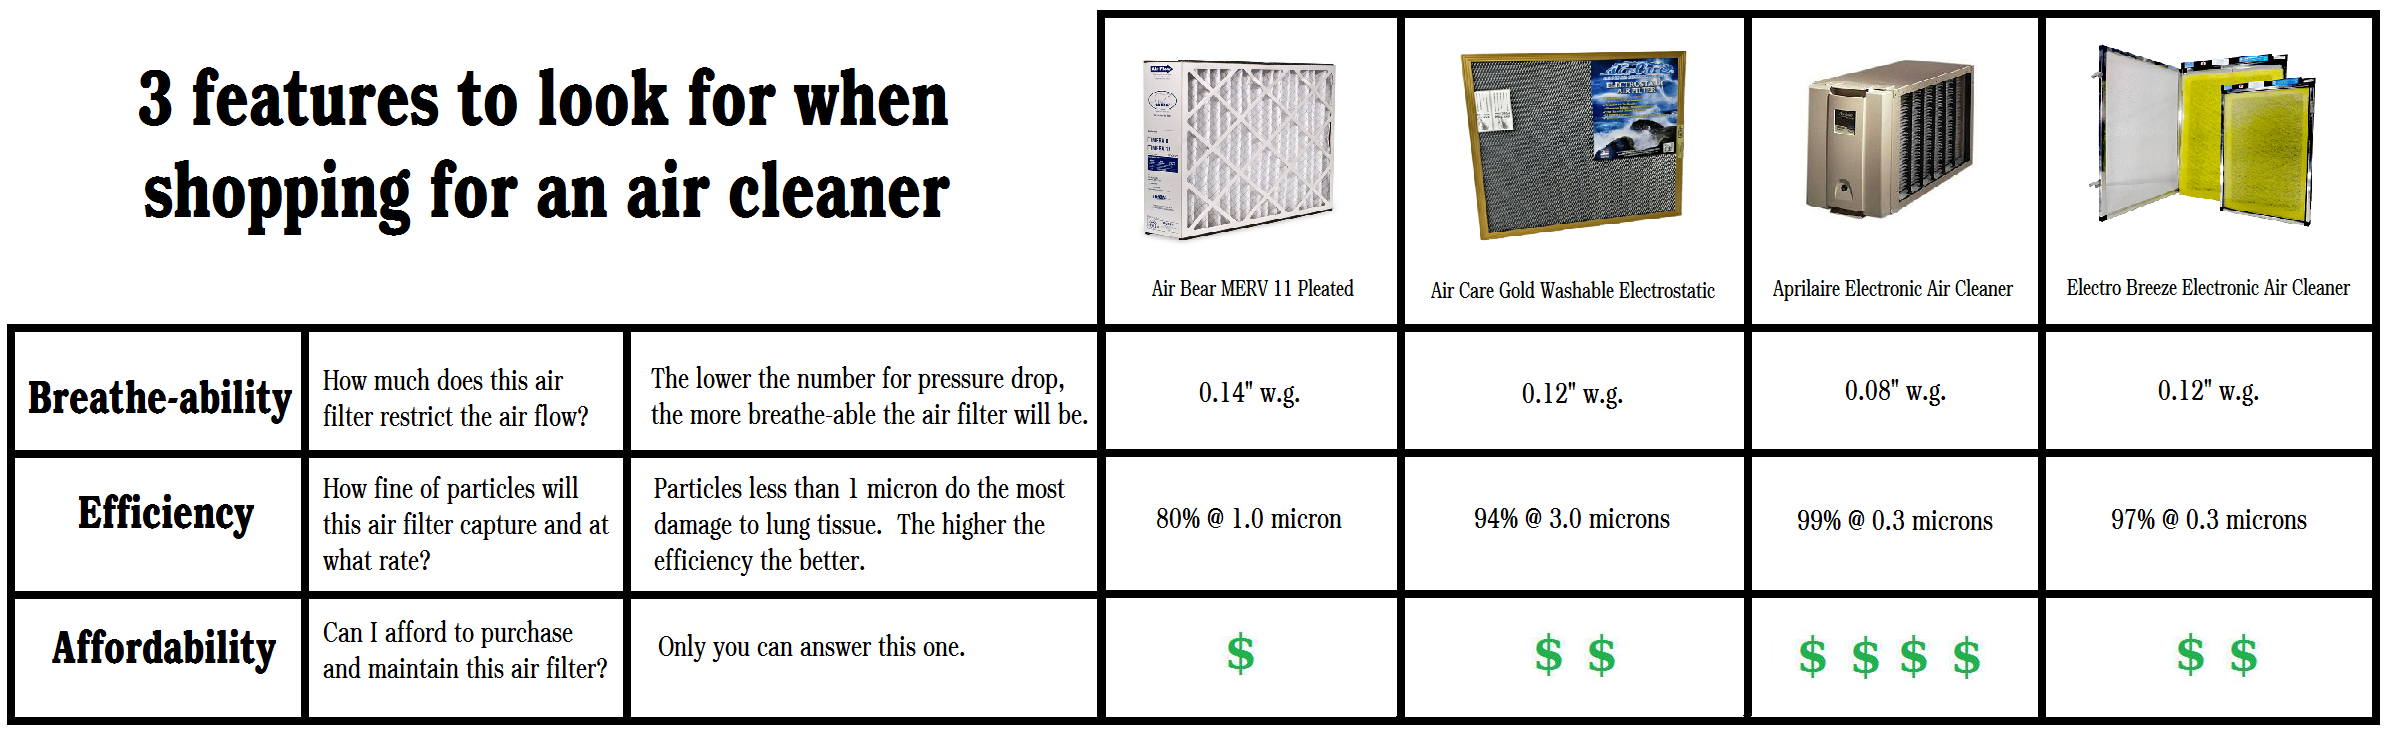 air-filter-compare-chart